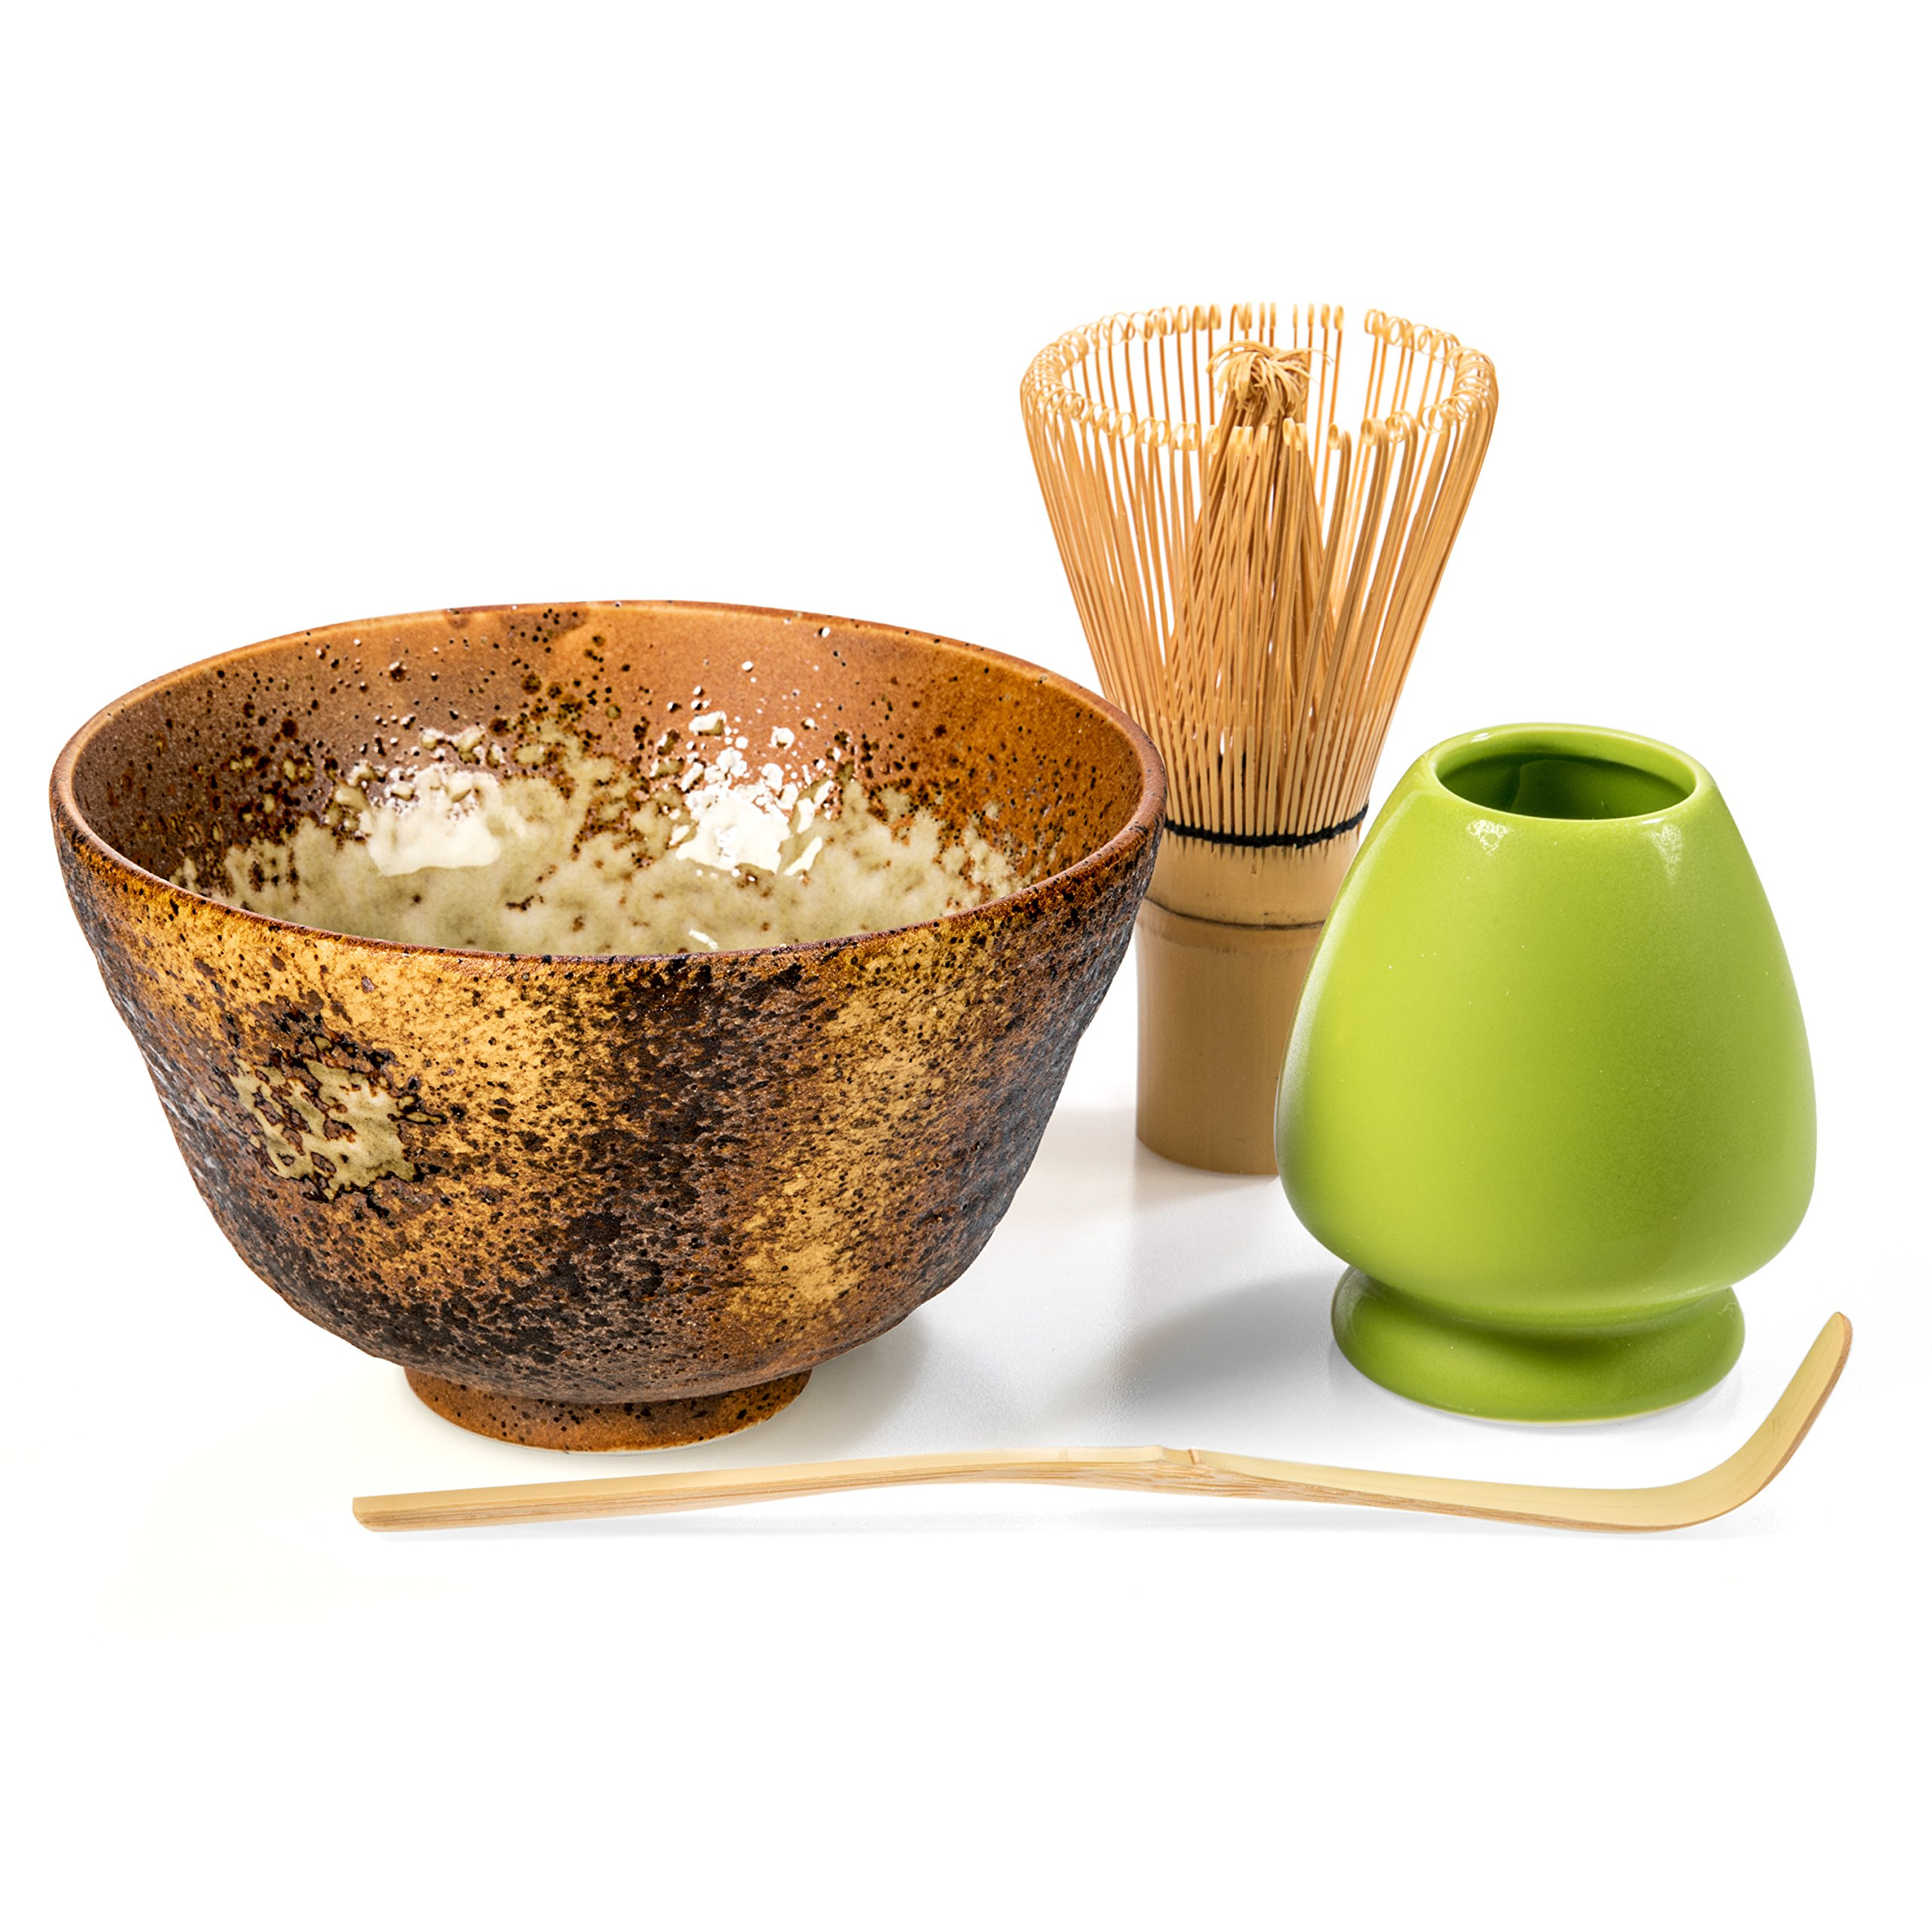 Tealyra - Matcha - Start Up Kit - 4 items - Matcha Green Tea Gift Set - Japanese Made Golden Bowl - Bamboo Whisk and Scoop - Whisk Holder - Gift Box